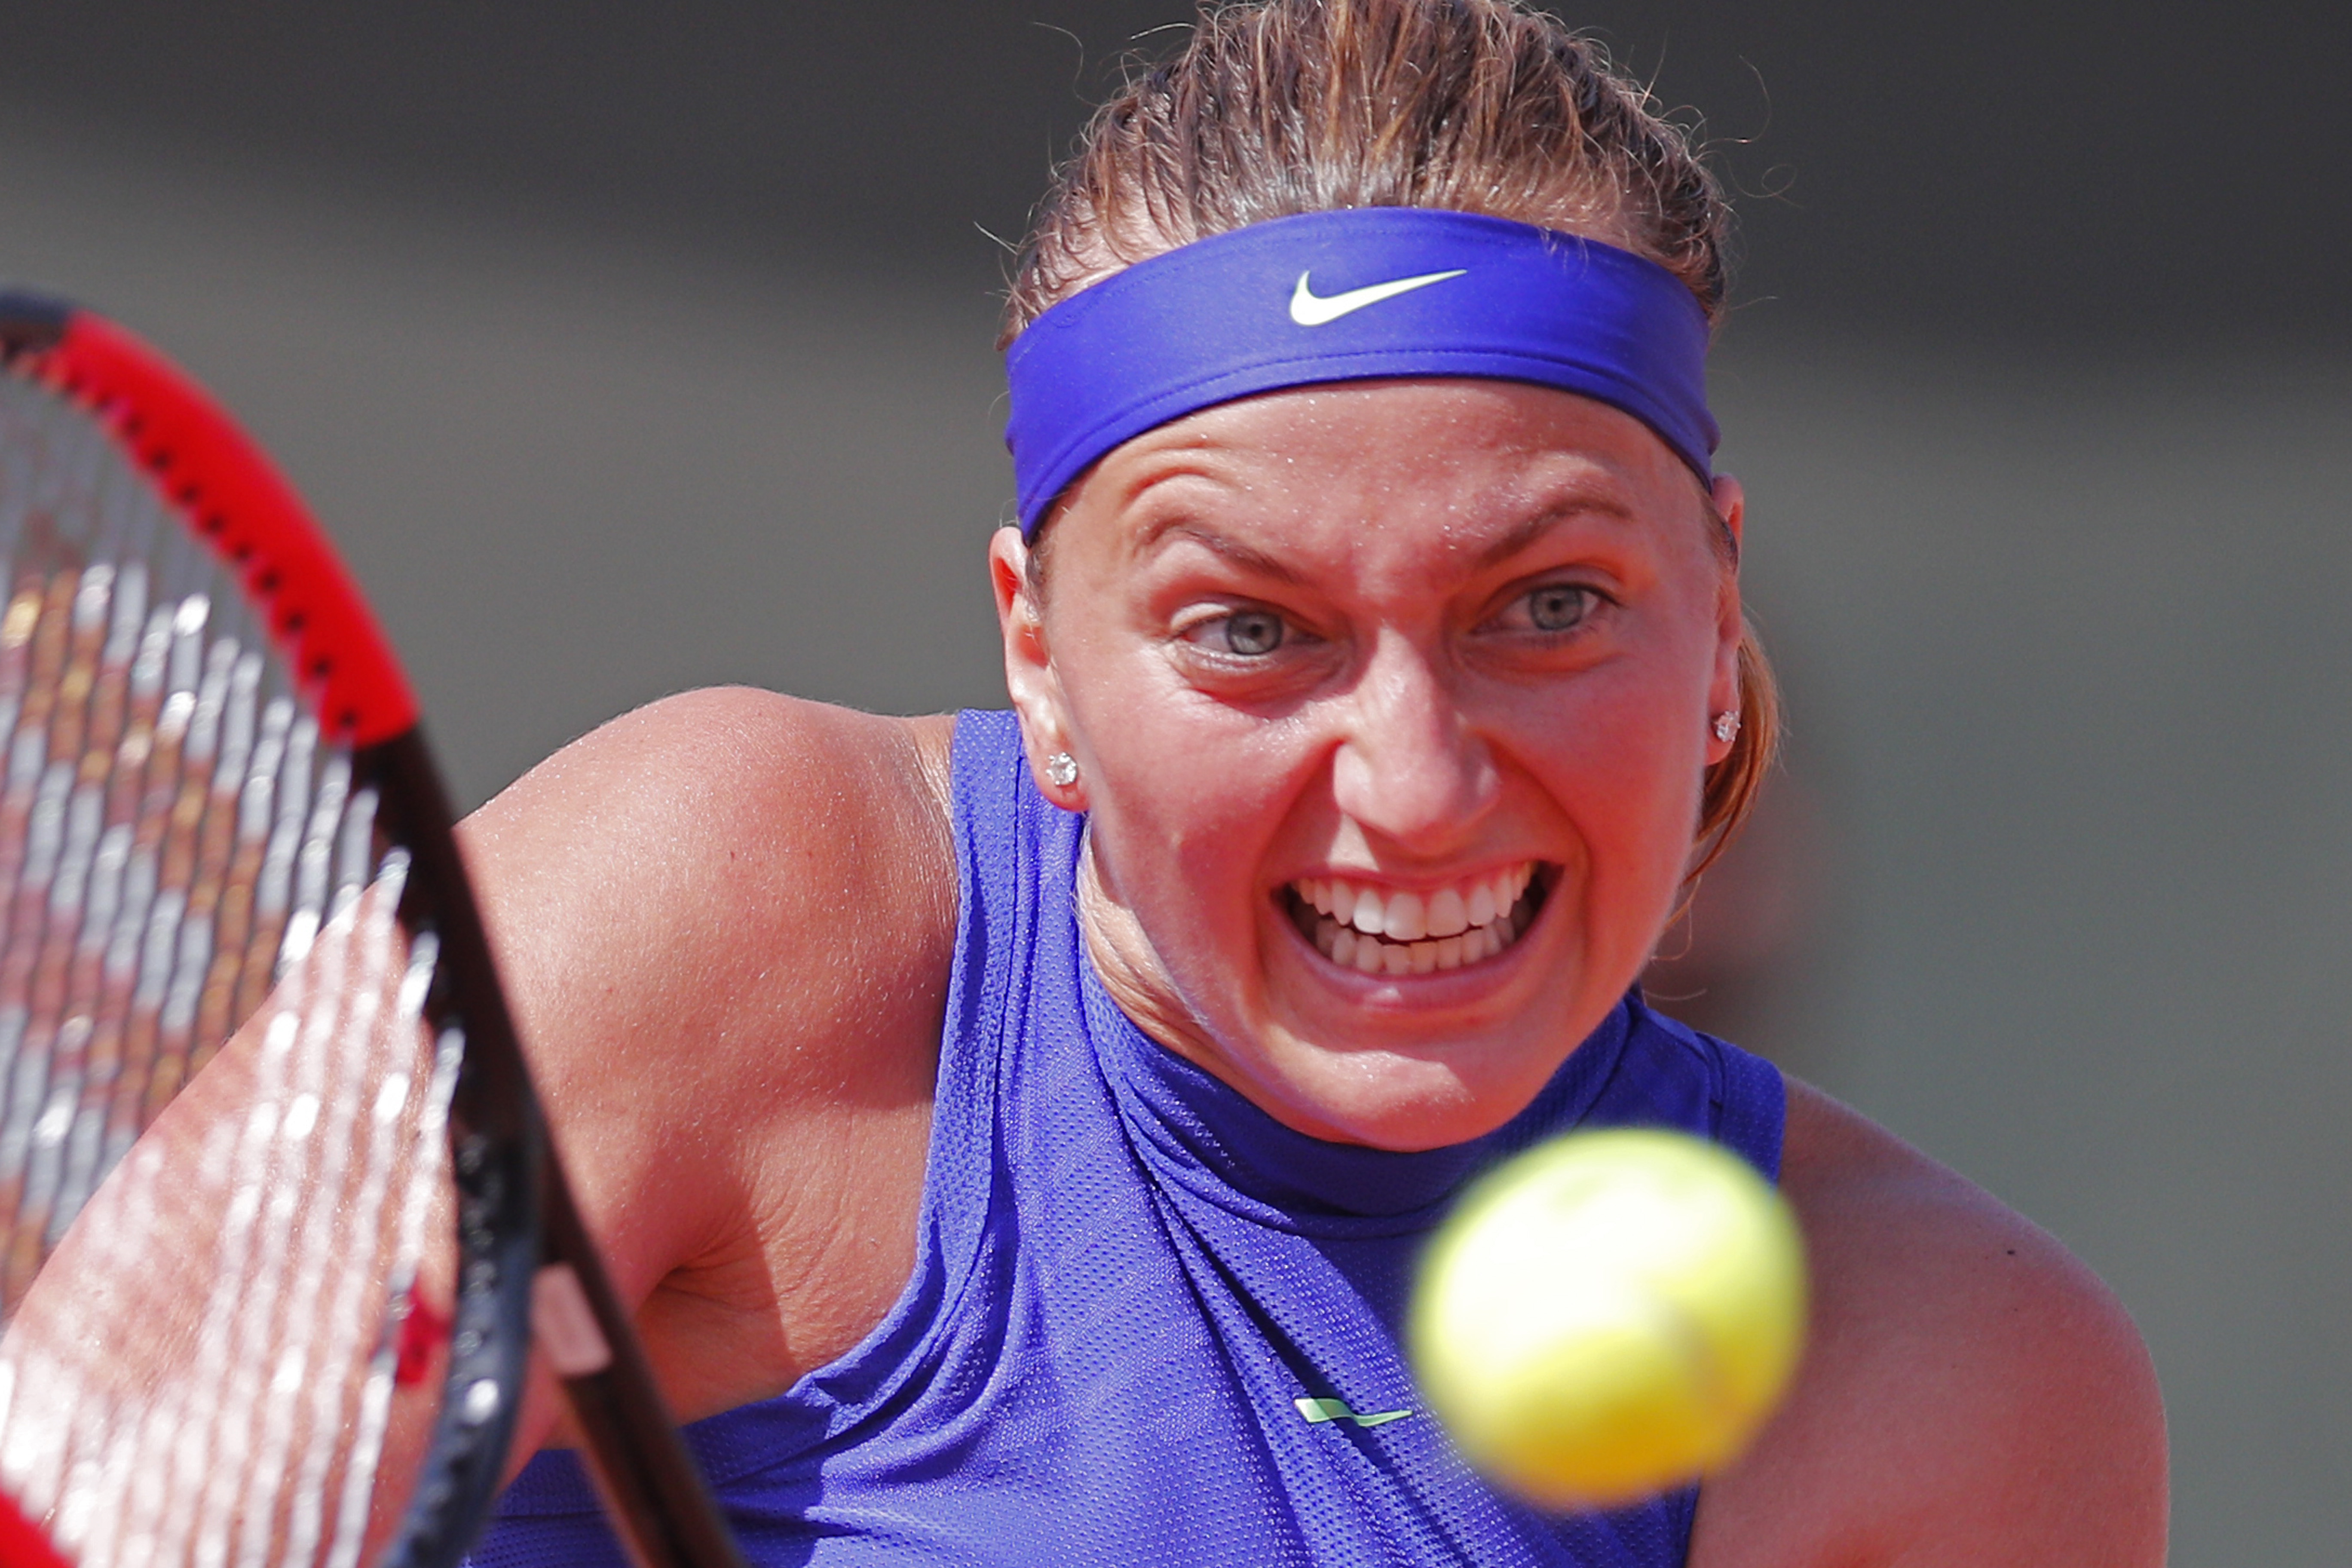 Petra Kvitova of the Czech Republic plays a shot against Bethanie Mattek-Sands of the U.S. during their second round match of the French Open tennis tournament at the Roland Garros stadium, in Paris, France. Wednesday, May 31, 2017. (AP Photo/Christophe E